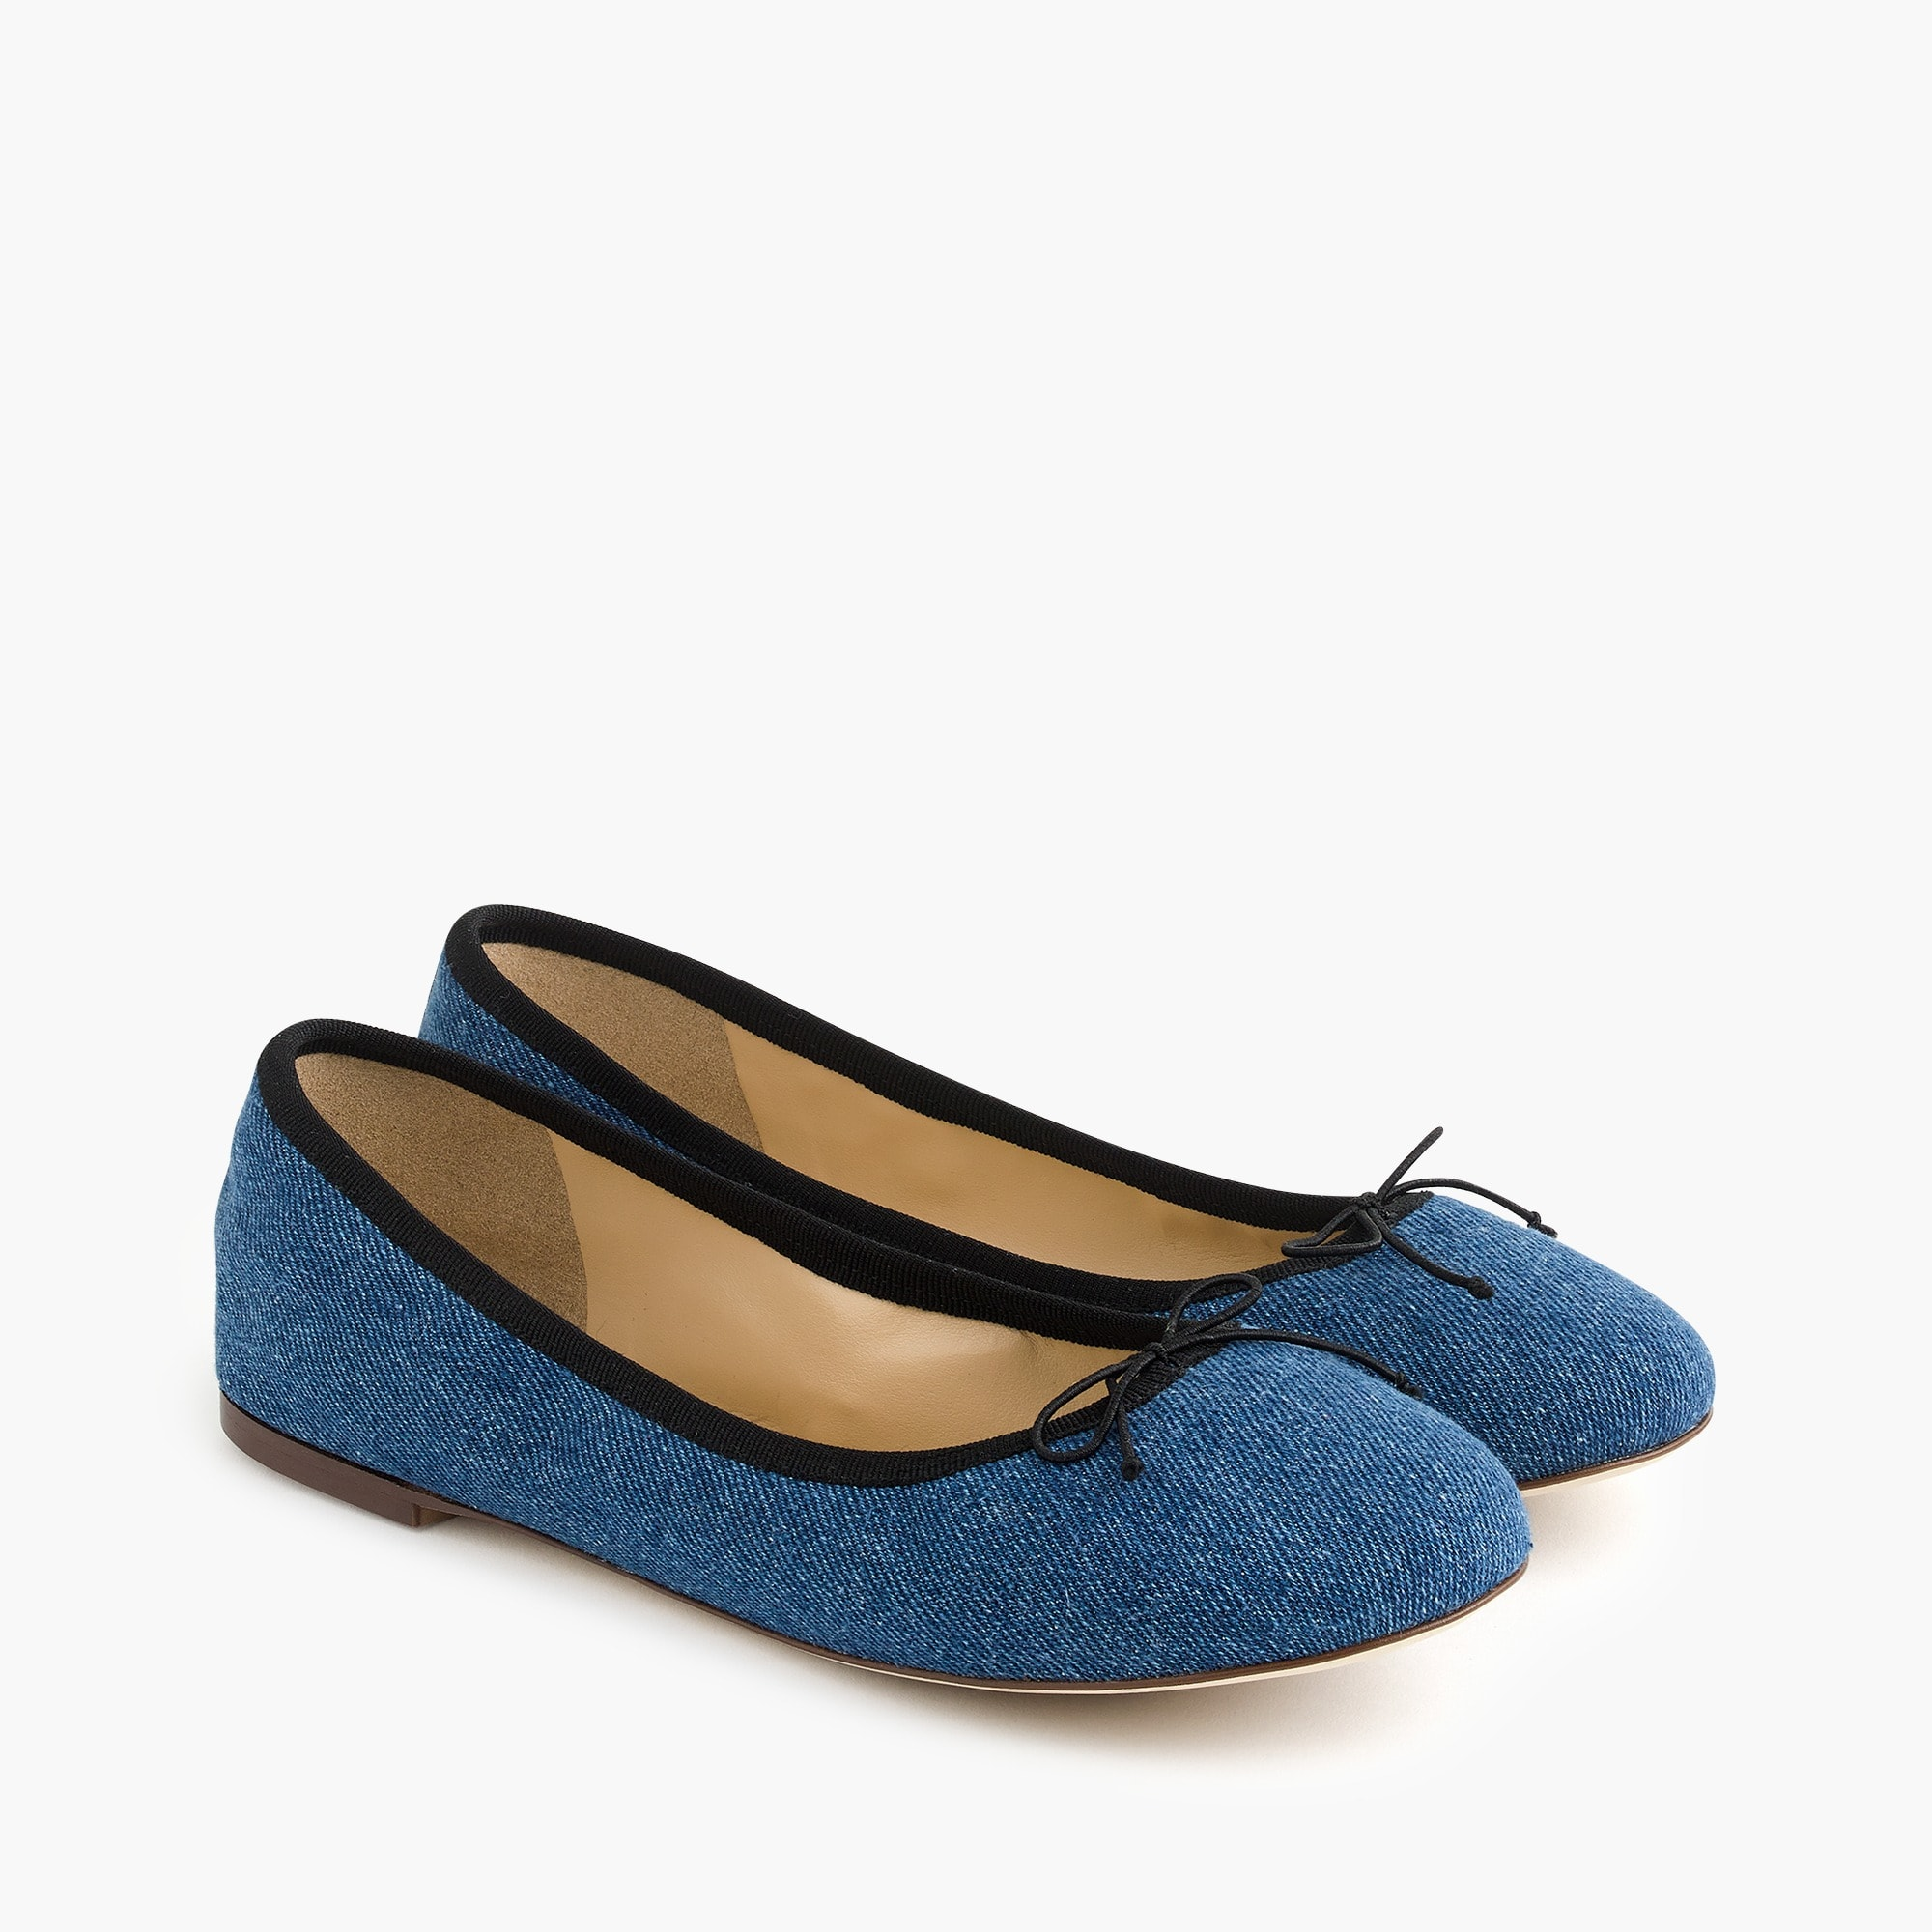 Image 1 for Evie ballet flats in denim